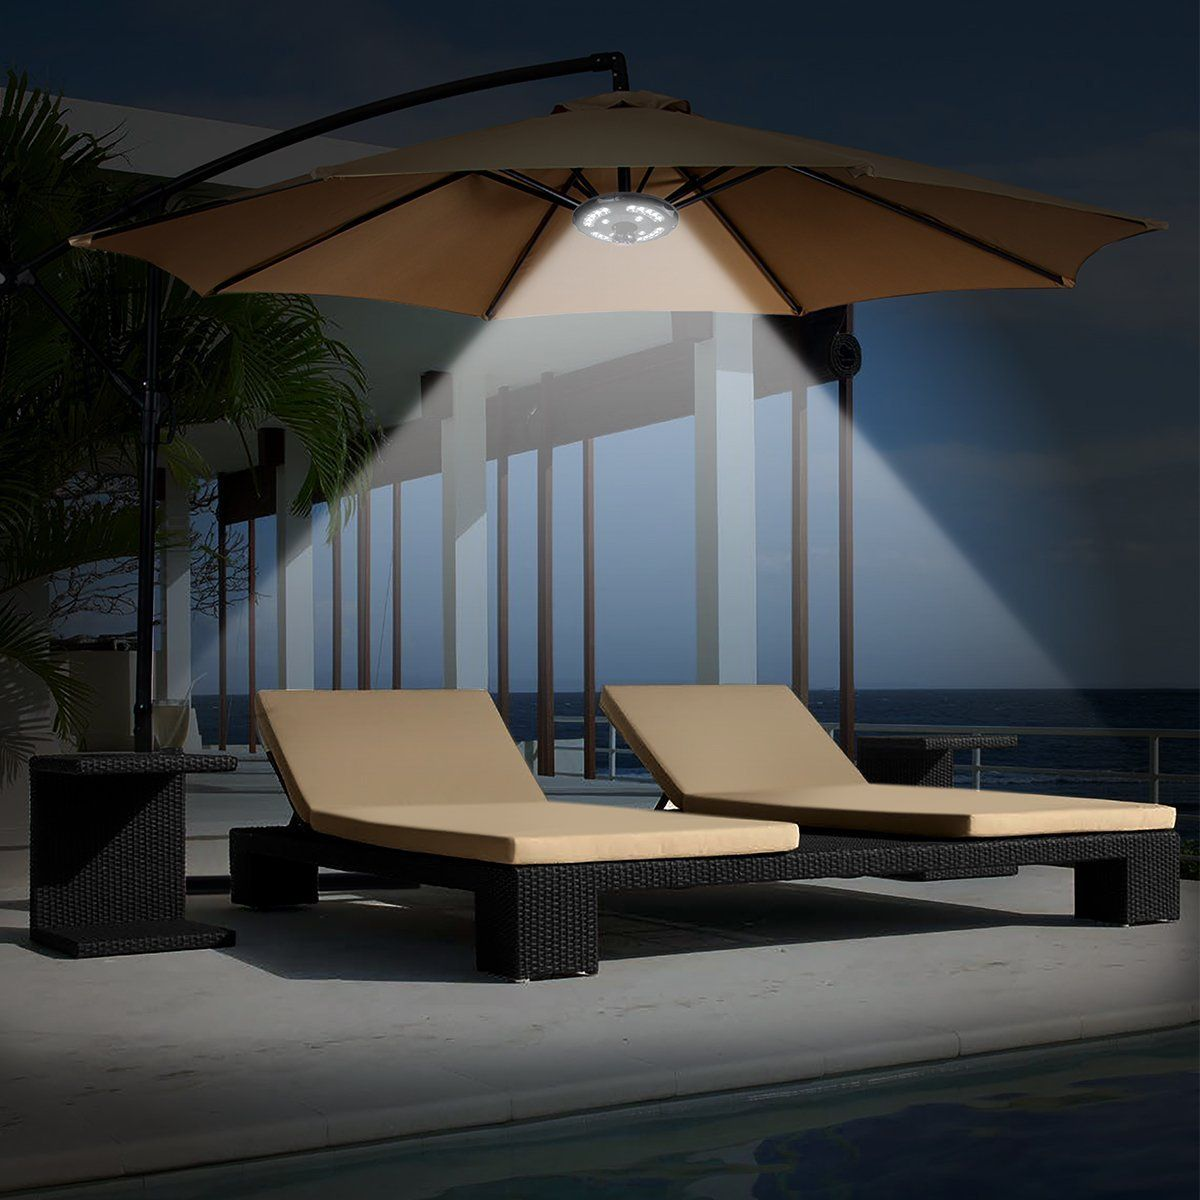 Amir Patio Umbrella Light Cordless 24 Led Night Lights 12 000 Lux Umbrella Led Light Battery Operated Um Patio Upgrade Patio Umbrella Lights Umbrella Lights